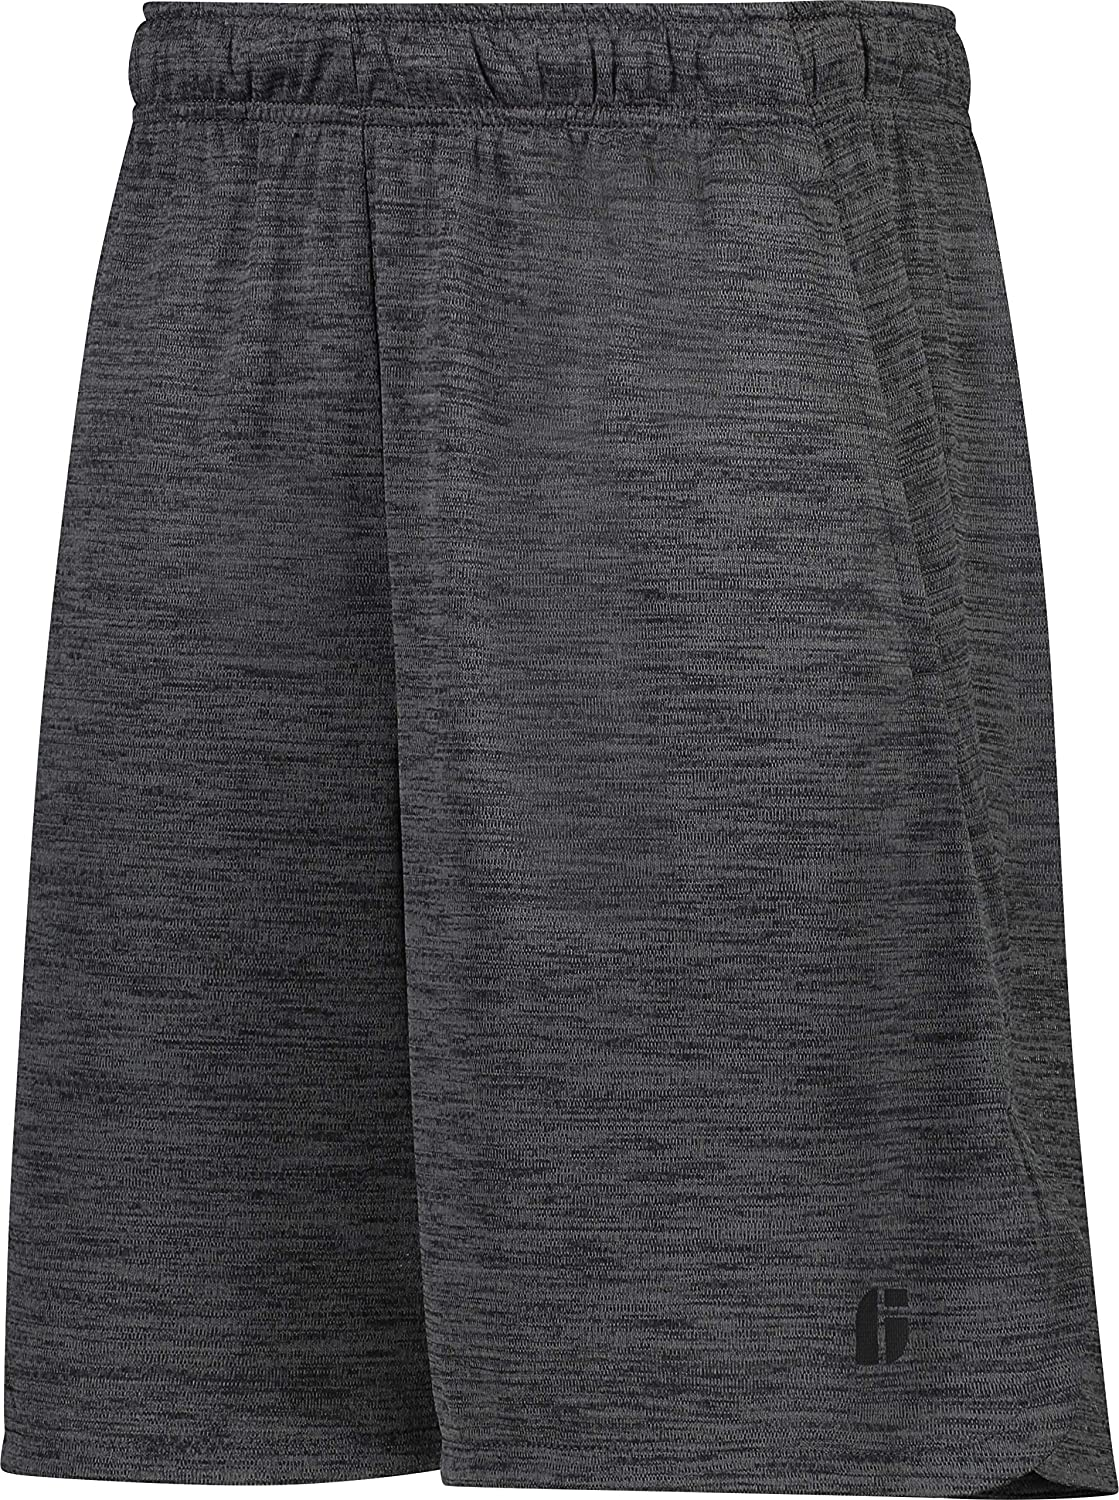 DRY FIT Gym Shorts for Men - Mens Workout Running Shorts - Moisture Wicking with Pockets and Side Hem Ink Slate Inc.